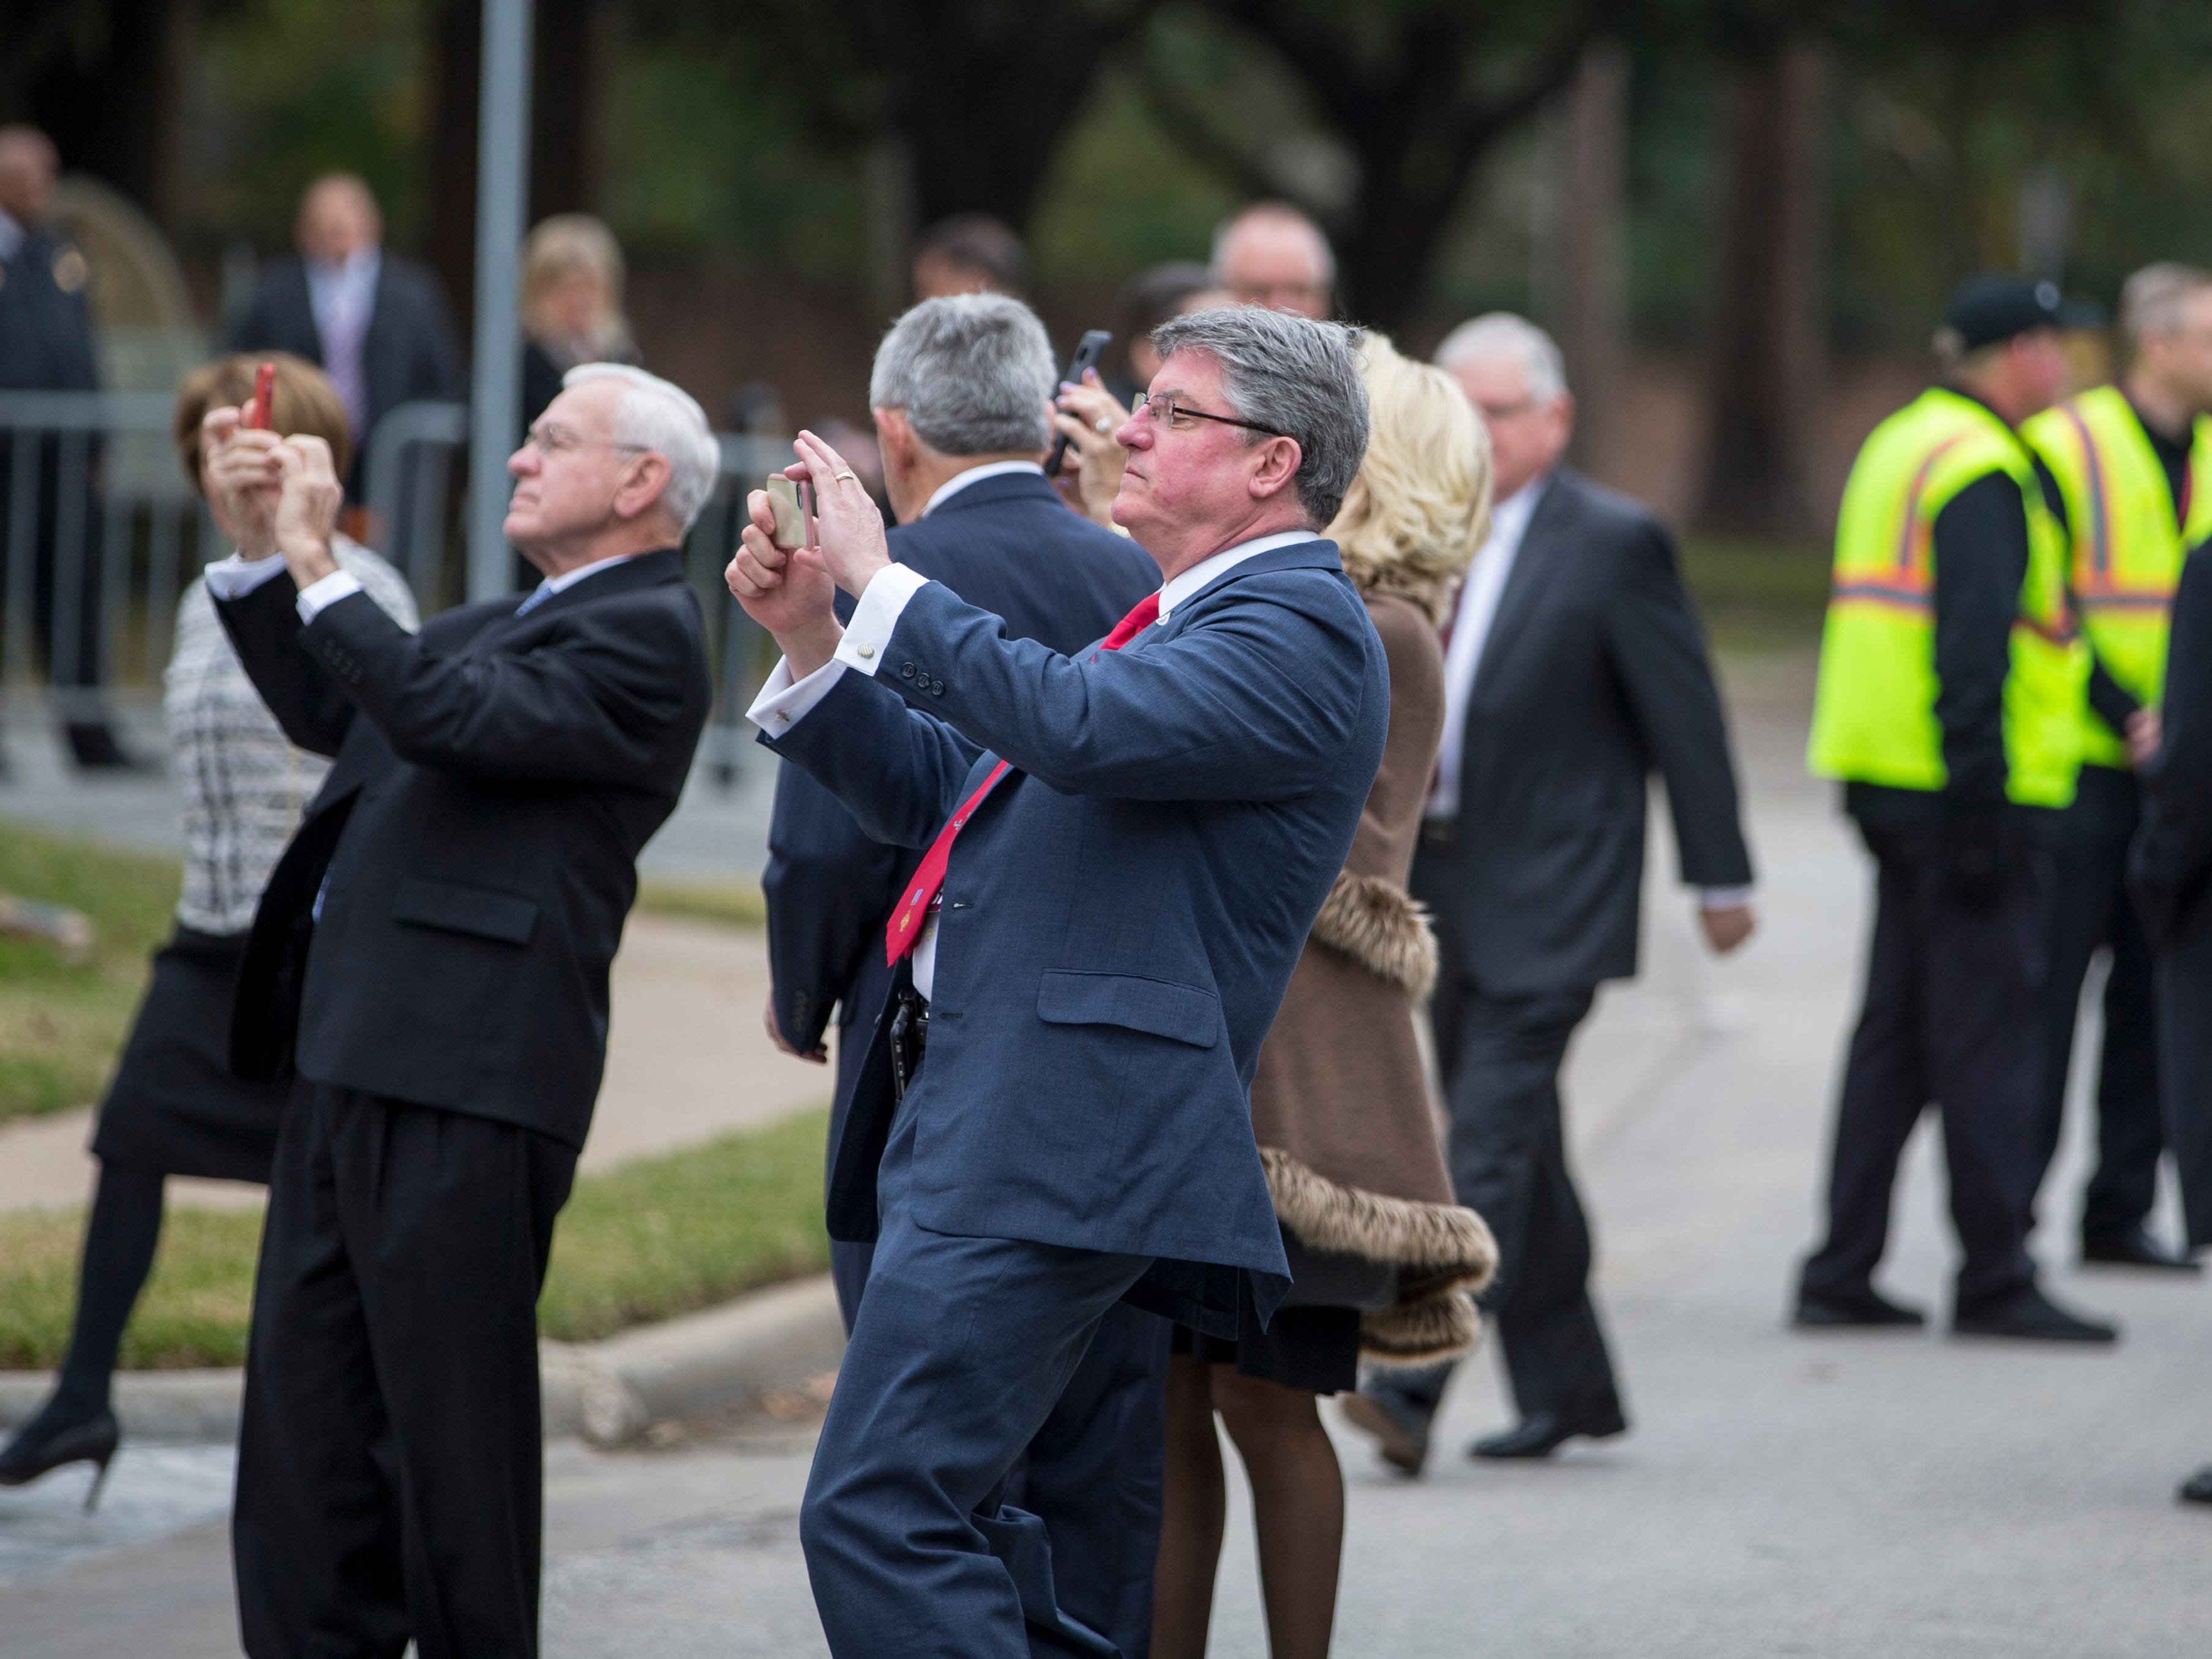 People take photos as they arrive at the church for former President George H.W. Bush's funeral service on Thursday, Dec. 6, 2018, at St. Martin's Episcopal Church in Houston, which is where he and former First Lady Barbara Bush worshiped for more than 50 years.